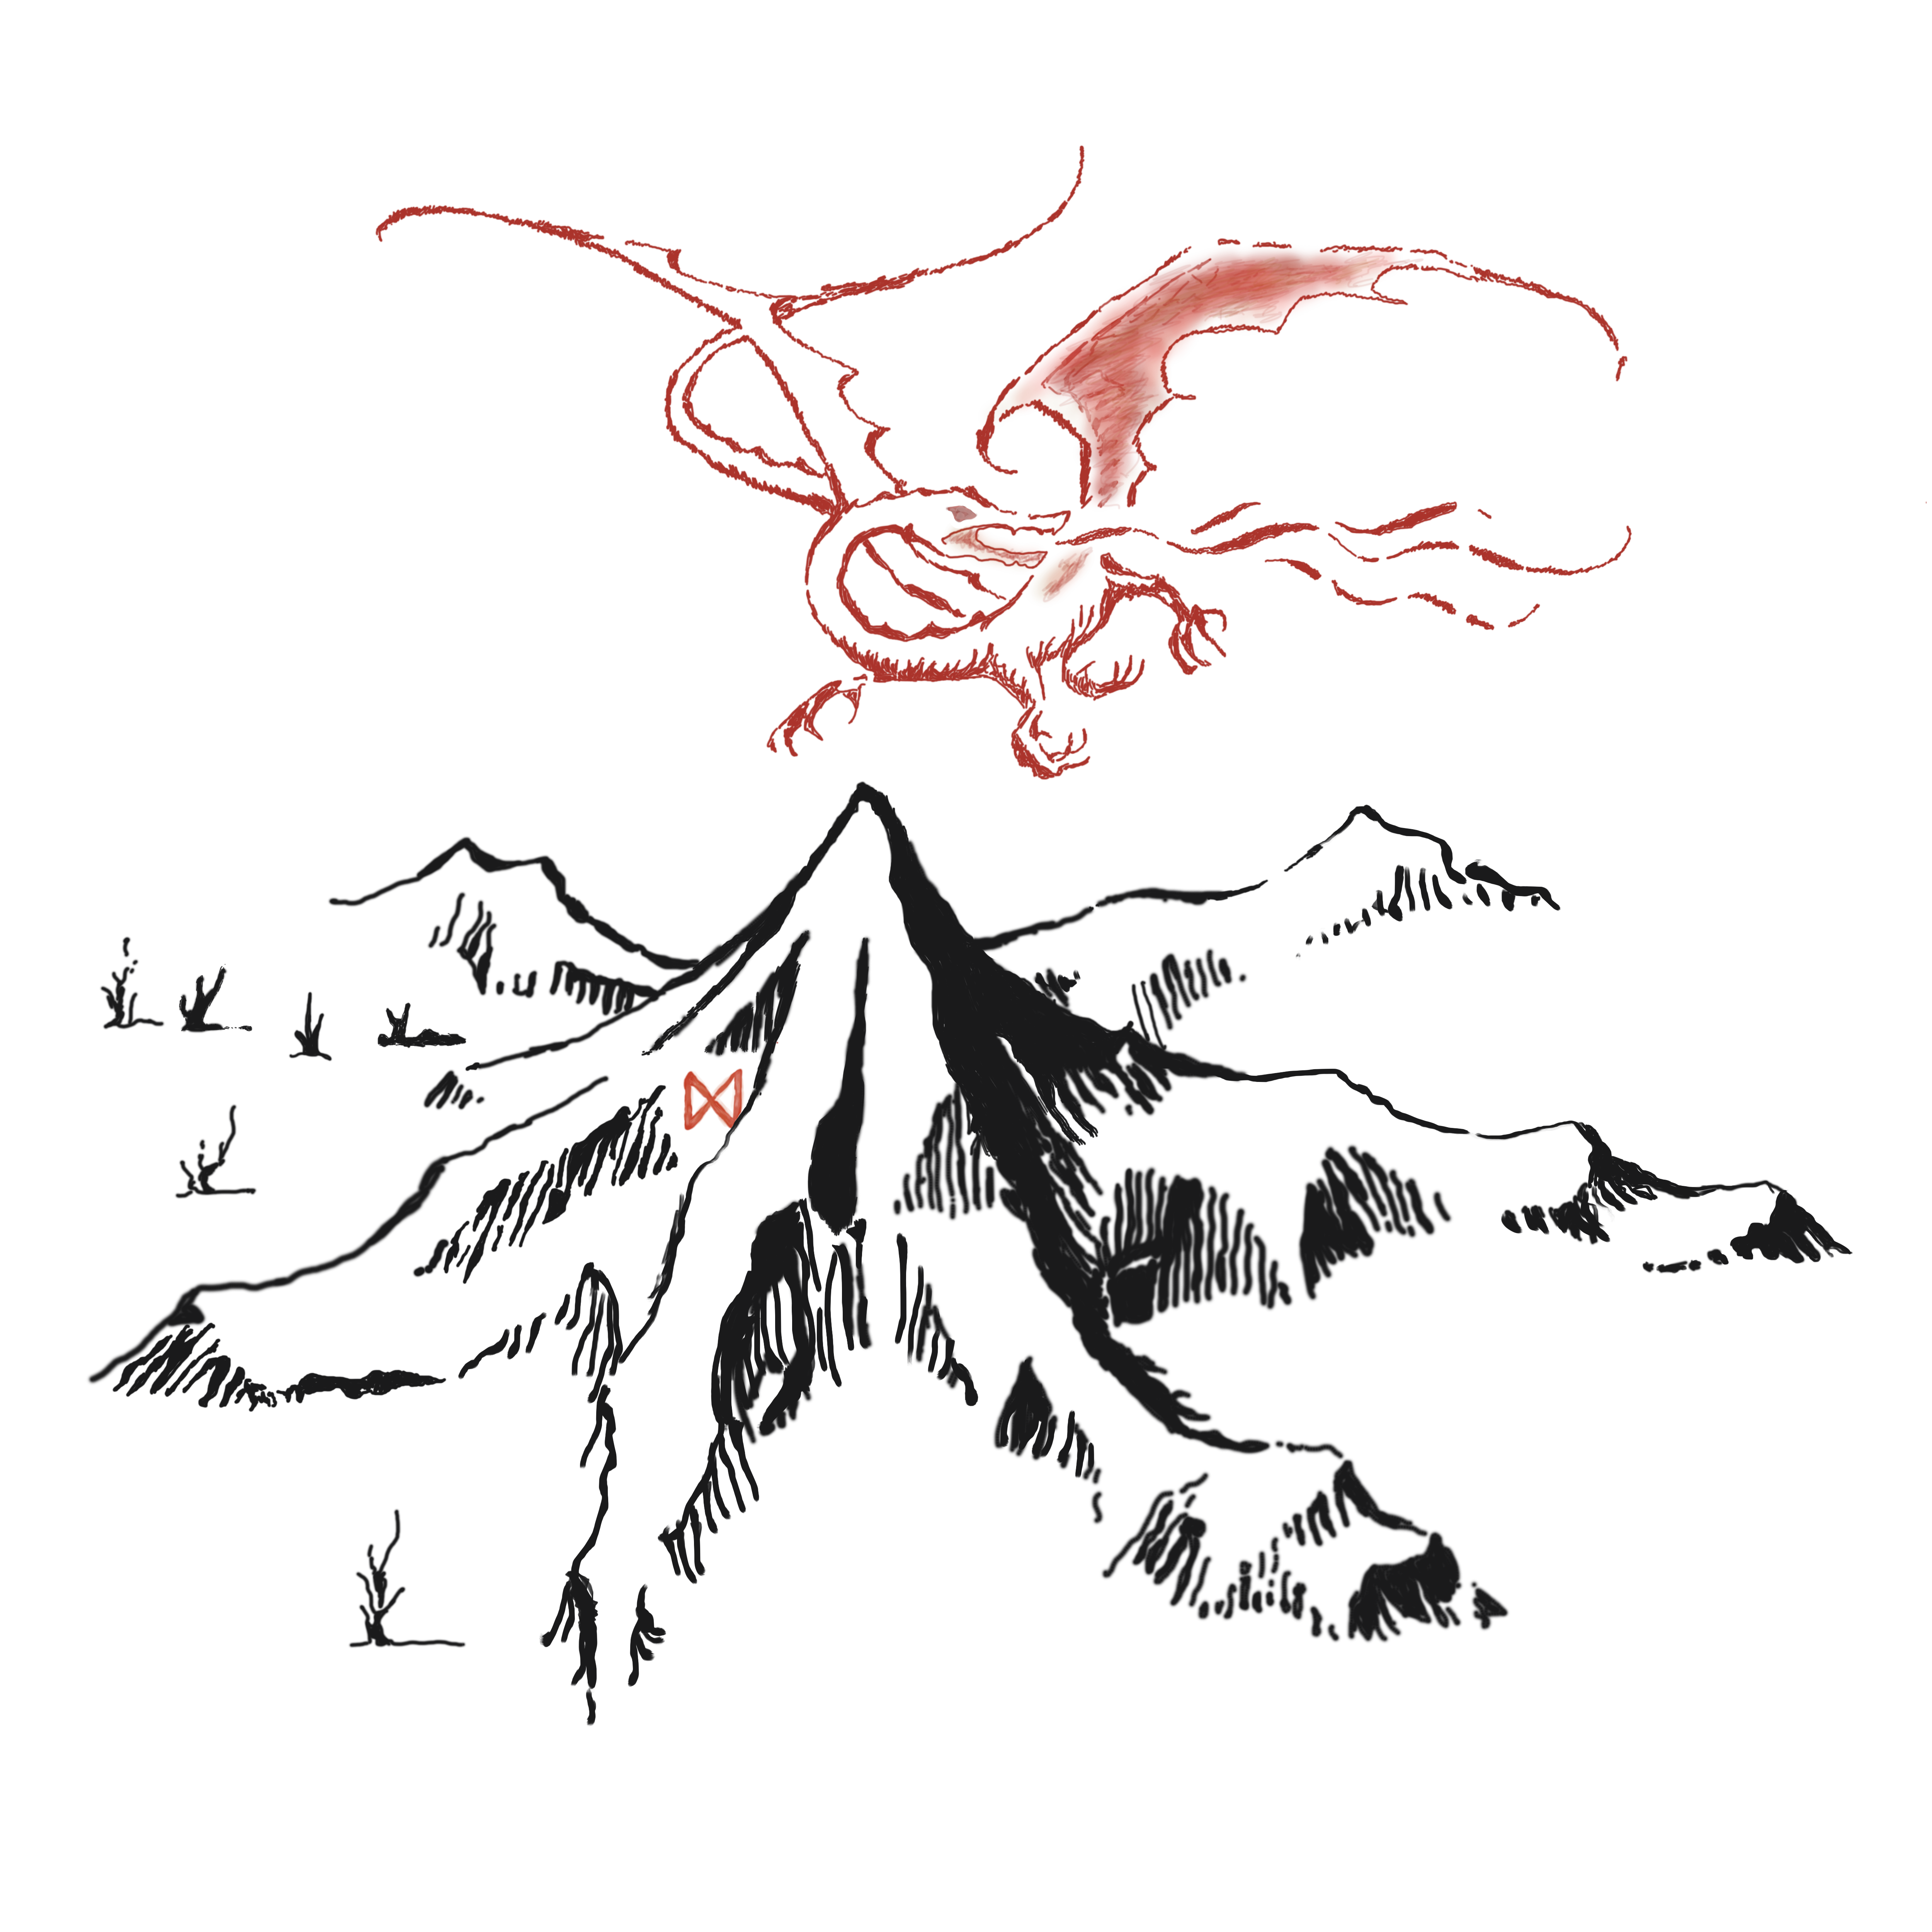 Lonely Mountain And Smaug Png By Tomaco94 D7dmonm Png 5000 5000 Lonely Gifts Gandalf Mountain Outline